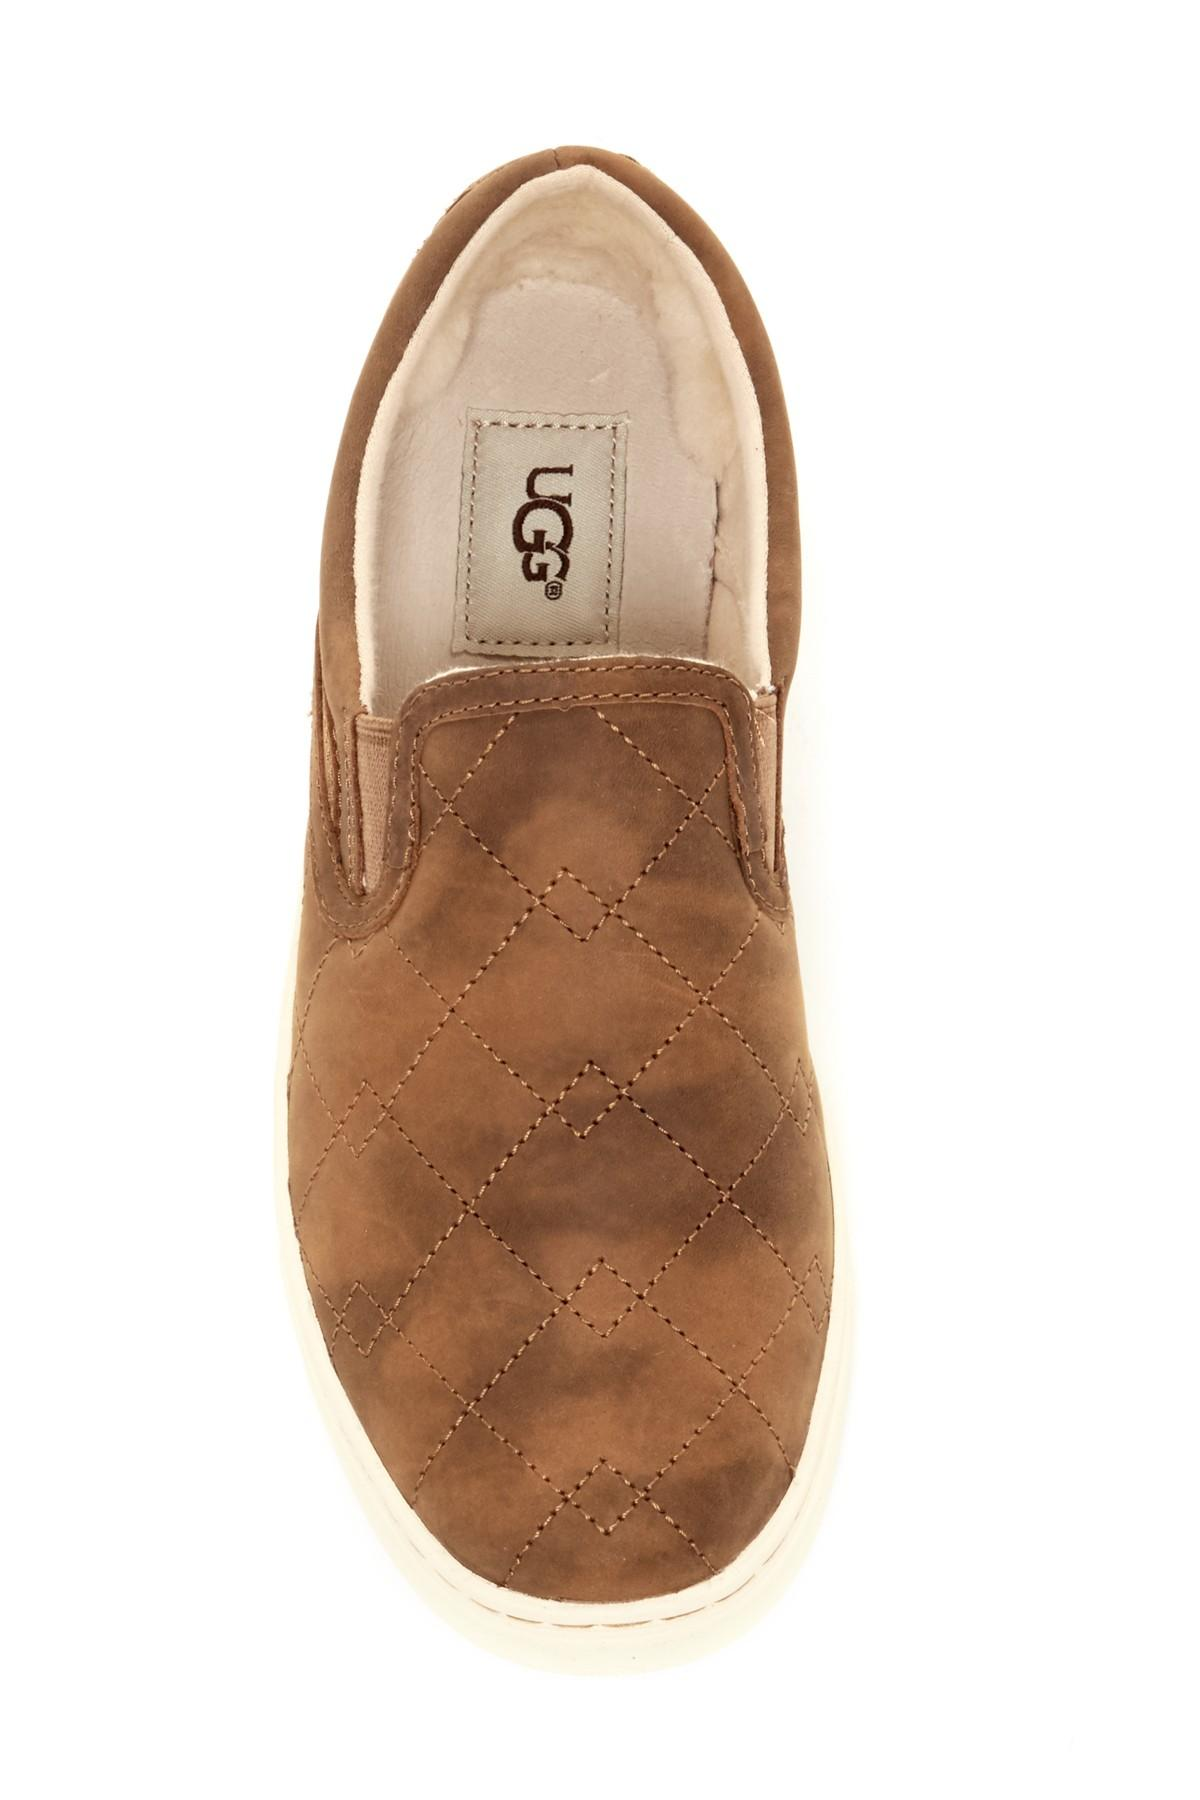 c1243340990 Ugg Brown Fierce Deco Quilted Pure(tm) Lined Slip-on Sneaker